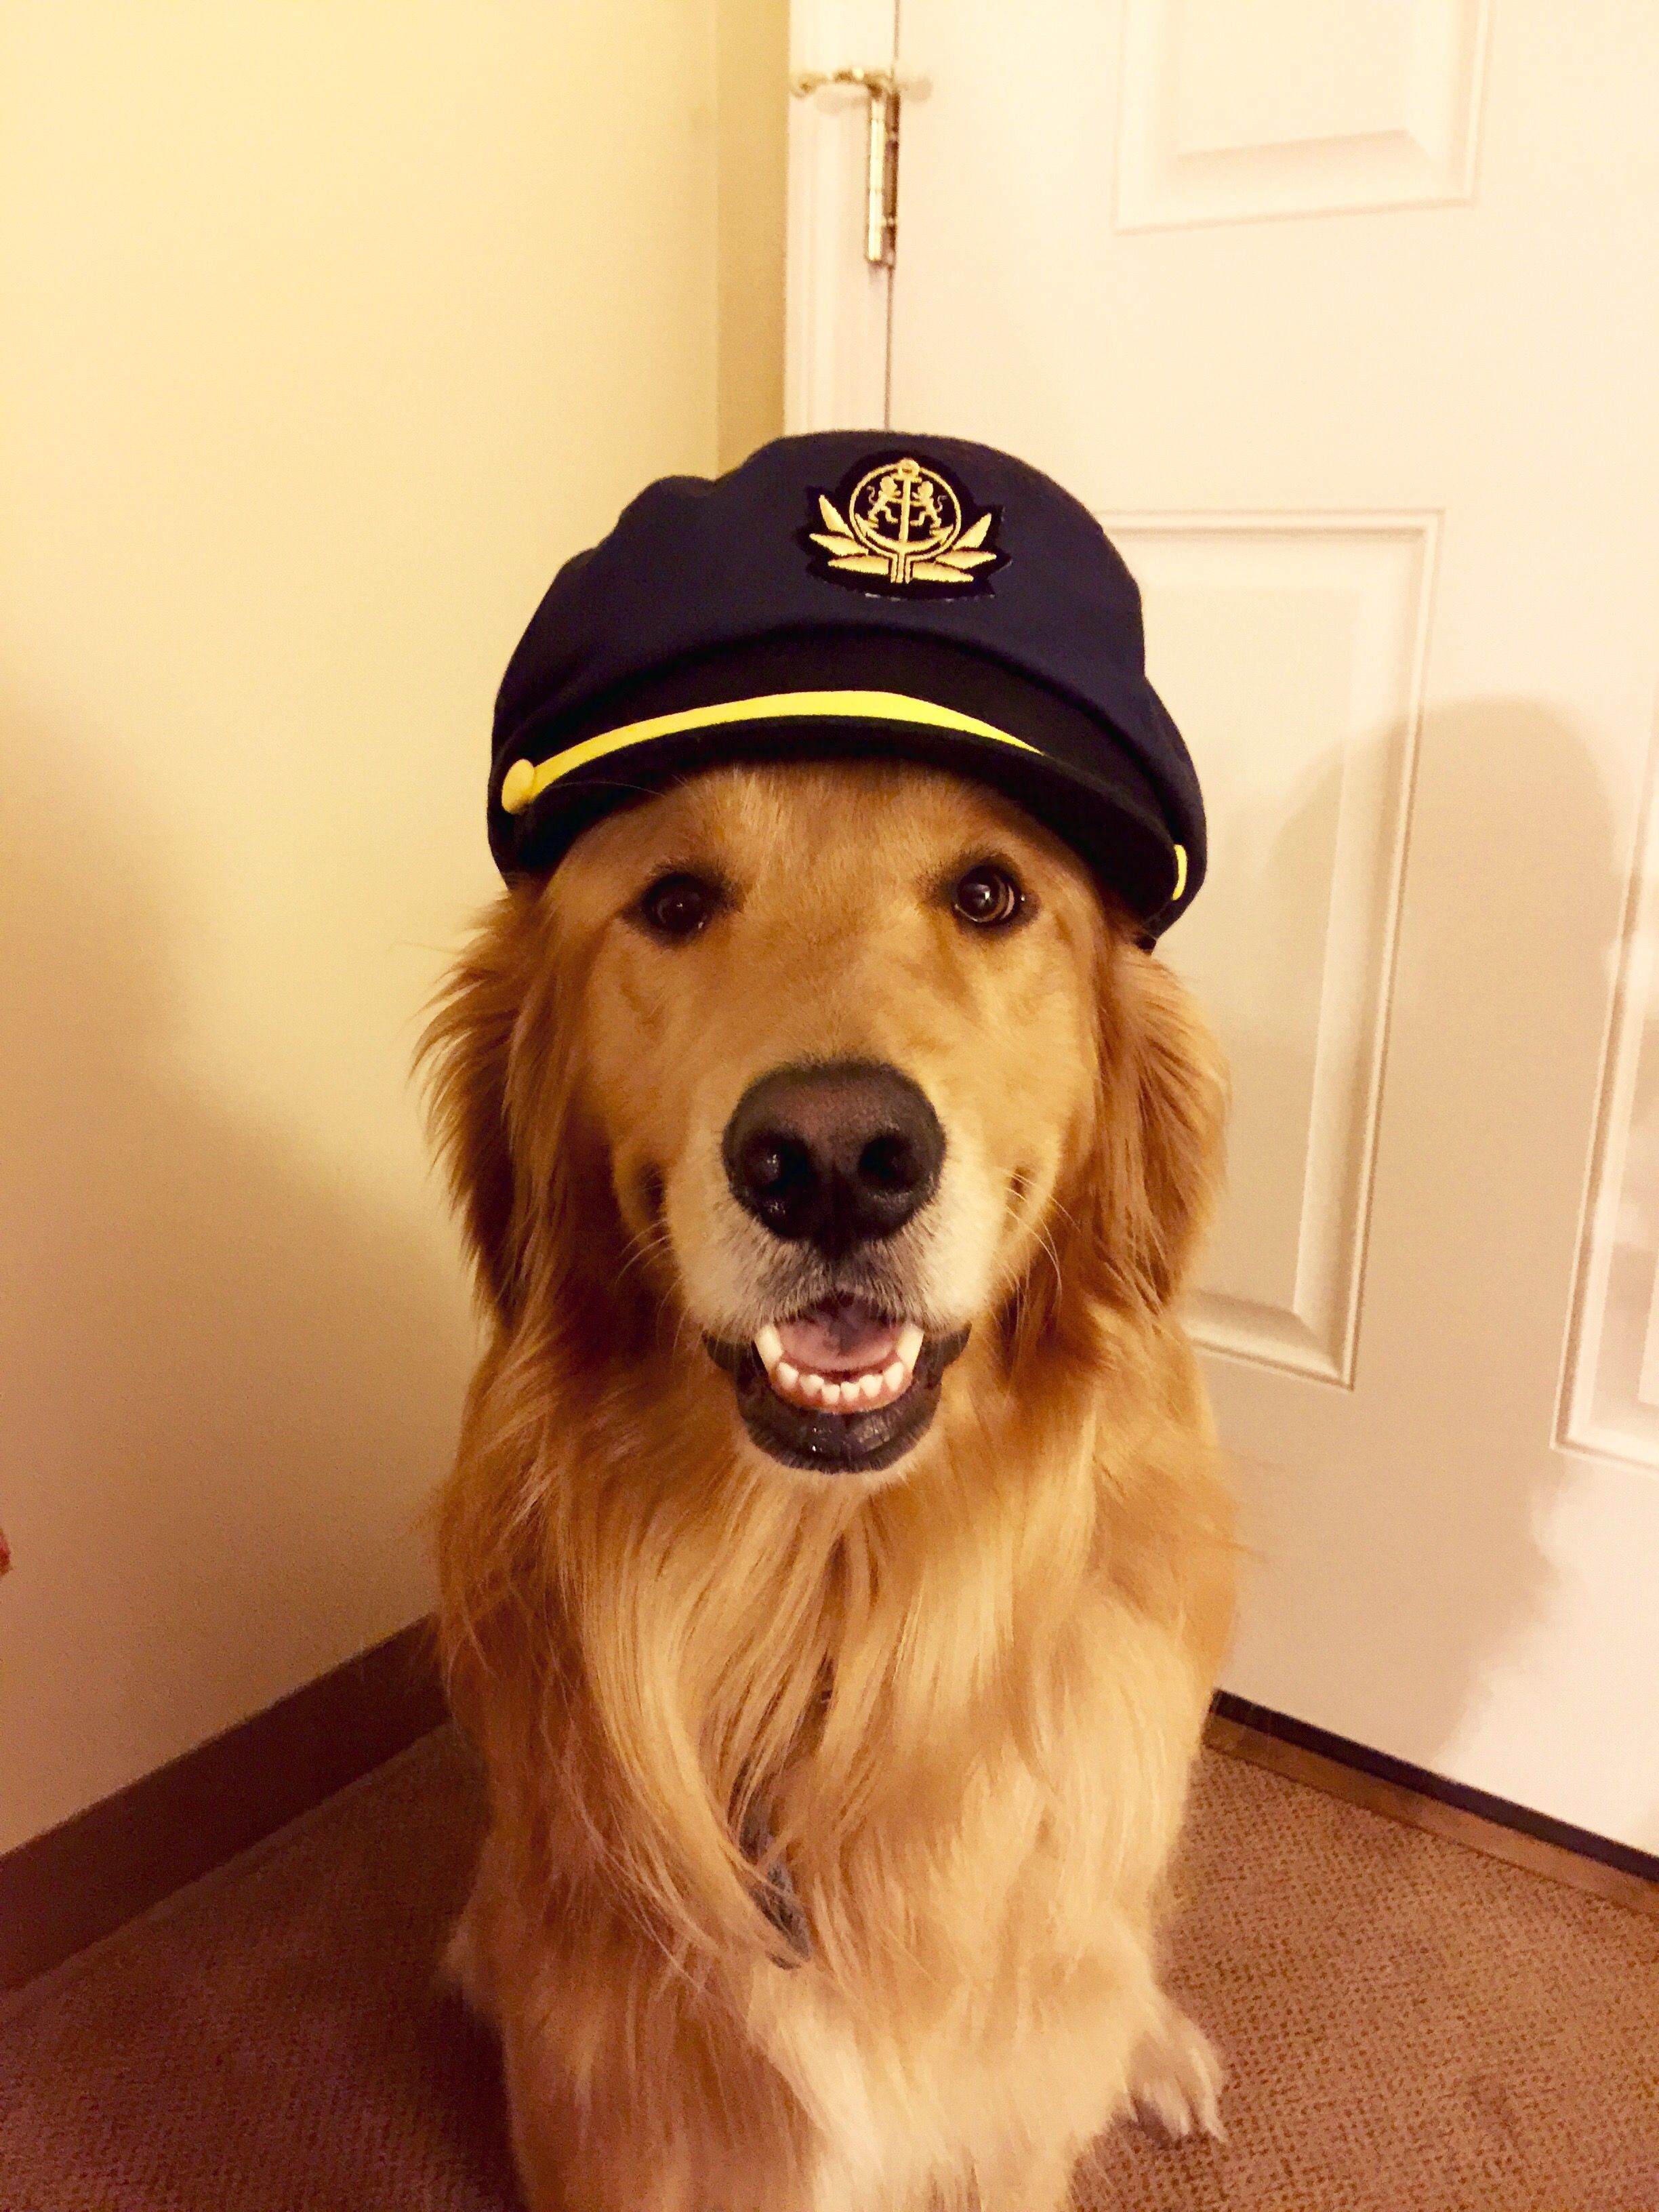 Golden Goldens Golden Retriever Golden Retrievers Retriever Retrievers Golden Retriever Dog Sailors Hat Sailo Dogs Golden Retriever Dog Love Happy Dogs